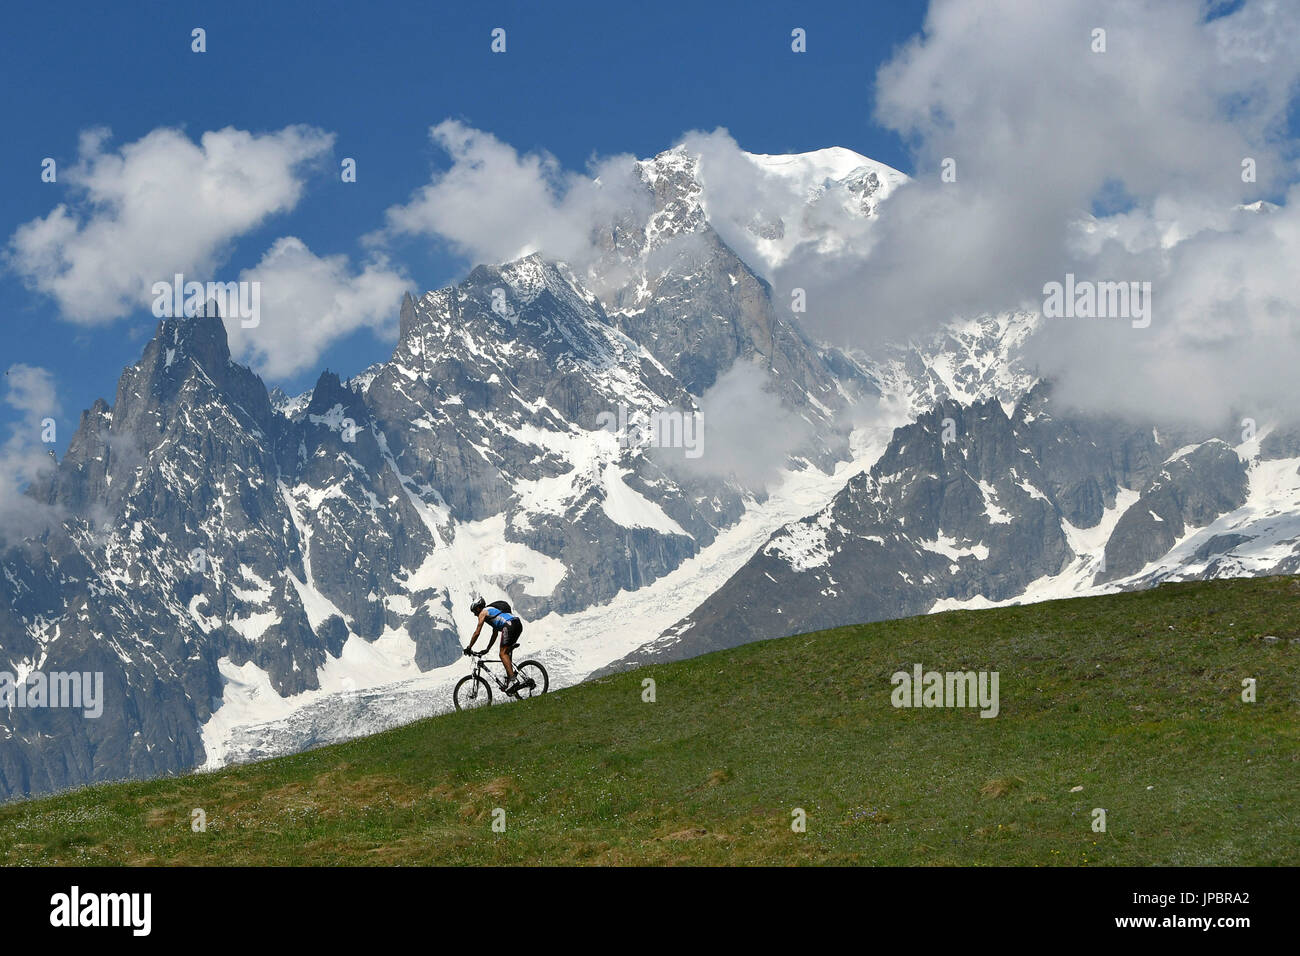 MTB Biker with Monte Bianco (mont Blanc) on background,Val Ferret, Aosta Valley,Italy - Stock Image